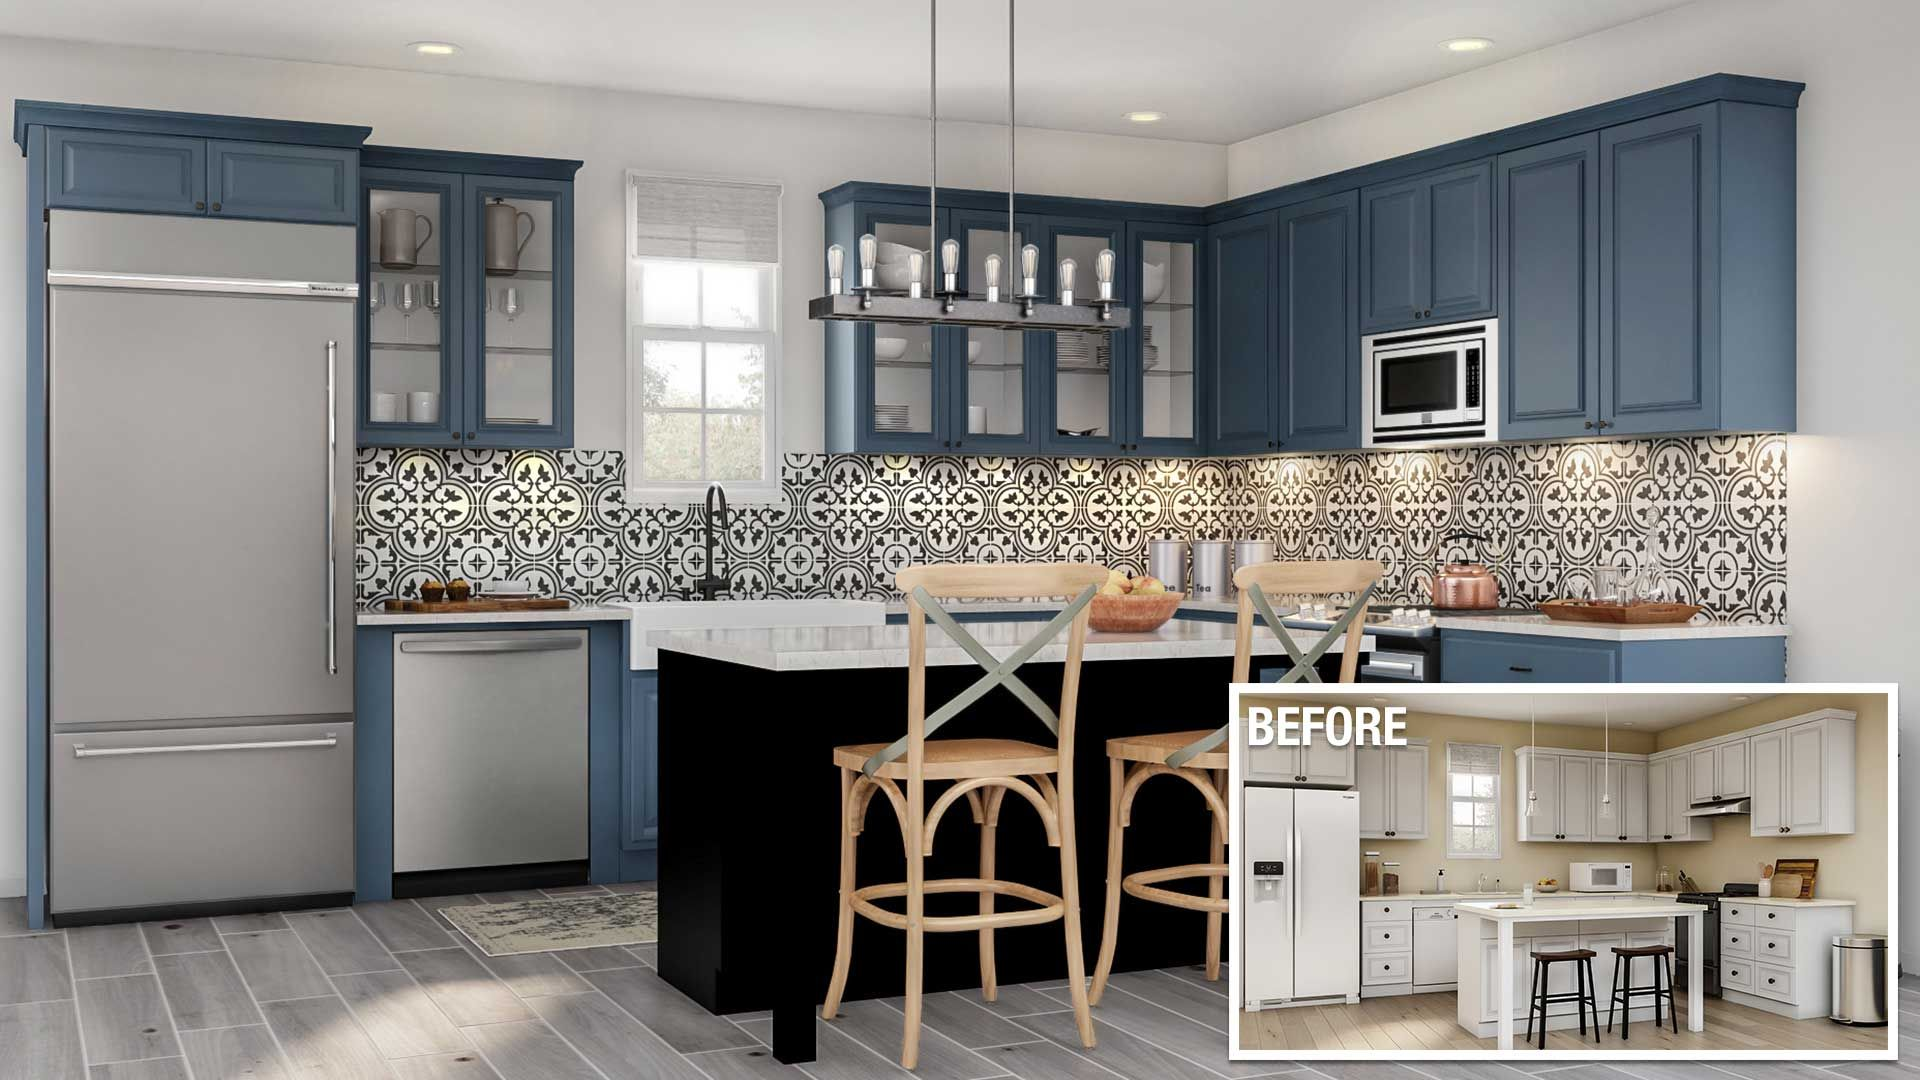 20 Kitchen Remodel Prices Virginia Home Depot Kitchen Remodel Kitchen Remodel Small Kitchen Remodel Cost